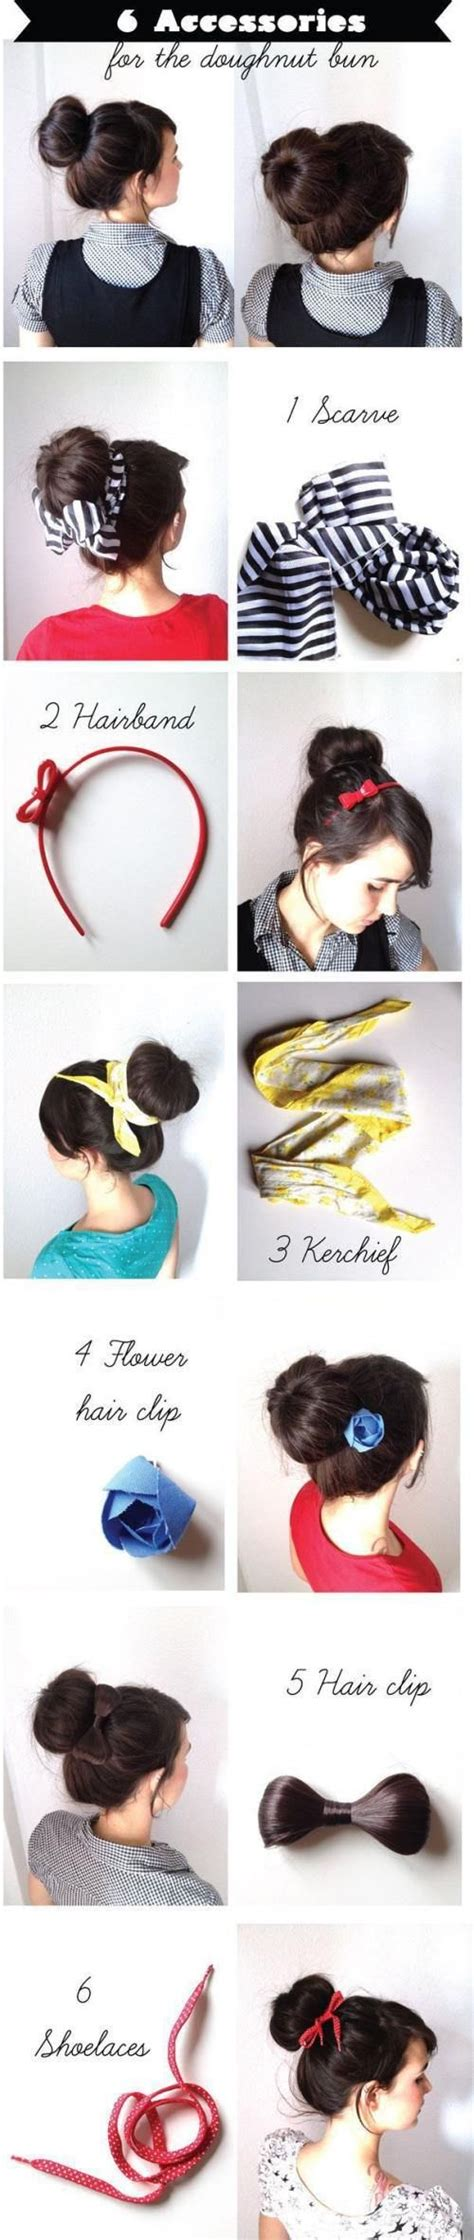 Hairstyles Accessories Bun Recipe by 6 Accessories For The Doughnut Bun Pictures Photos And